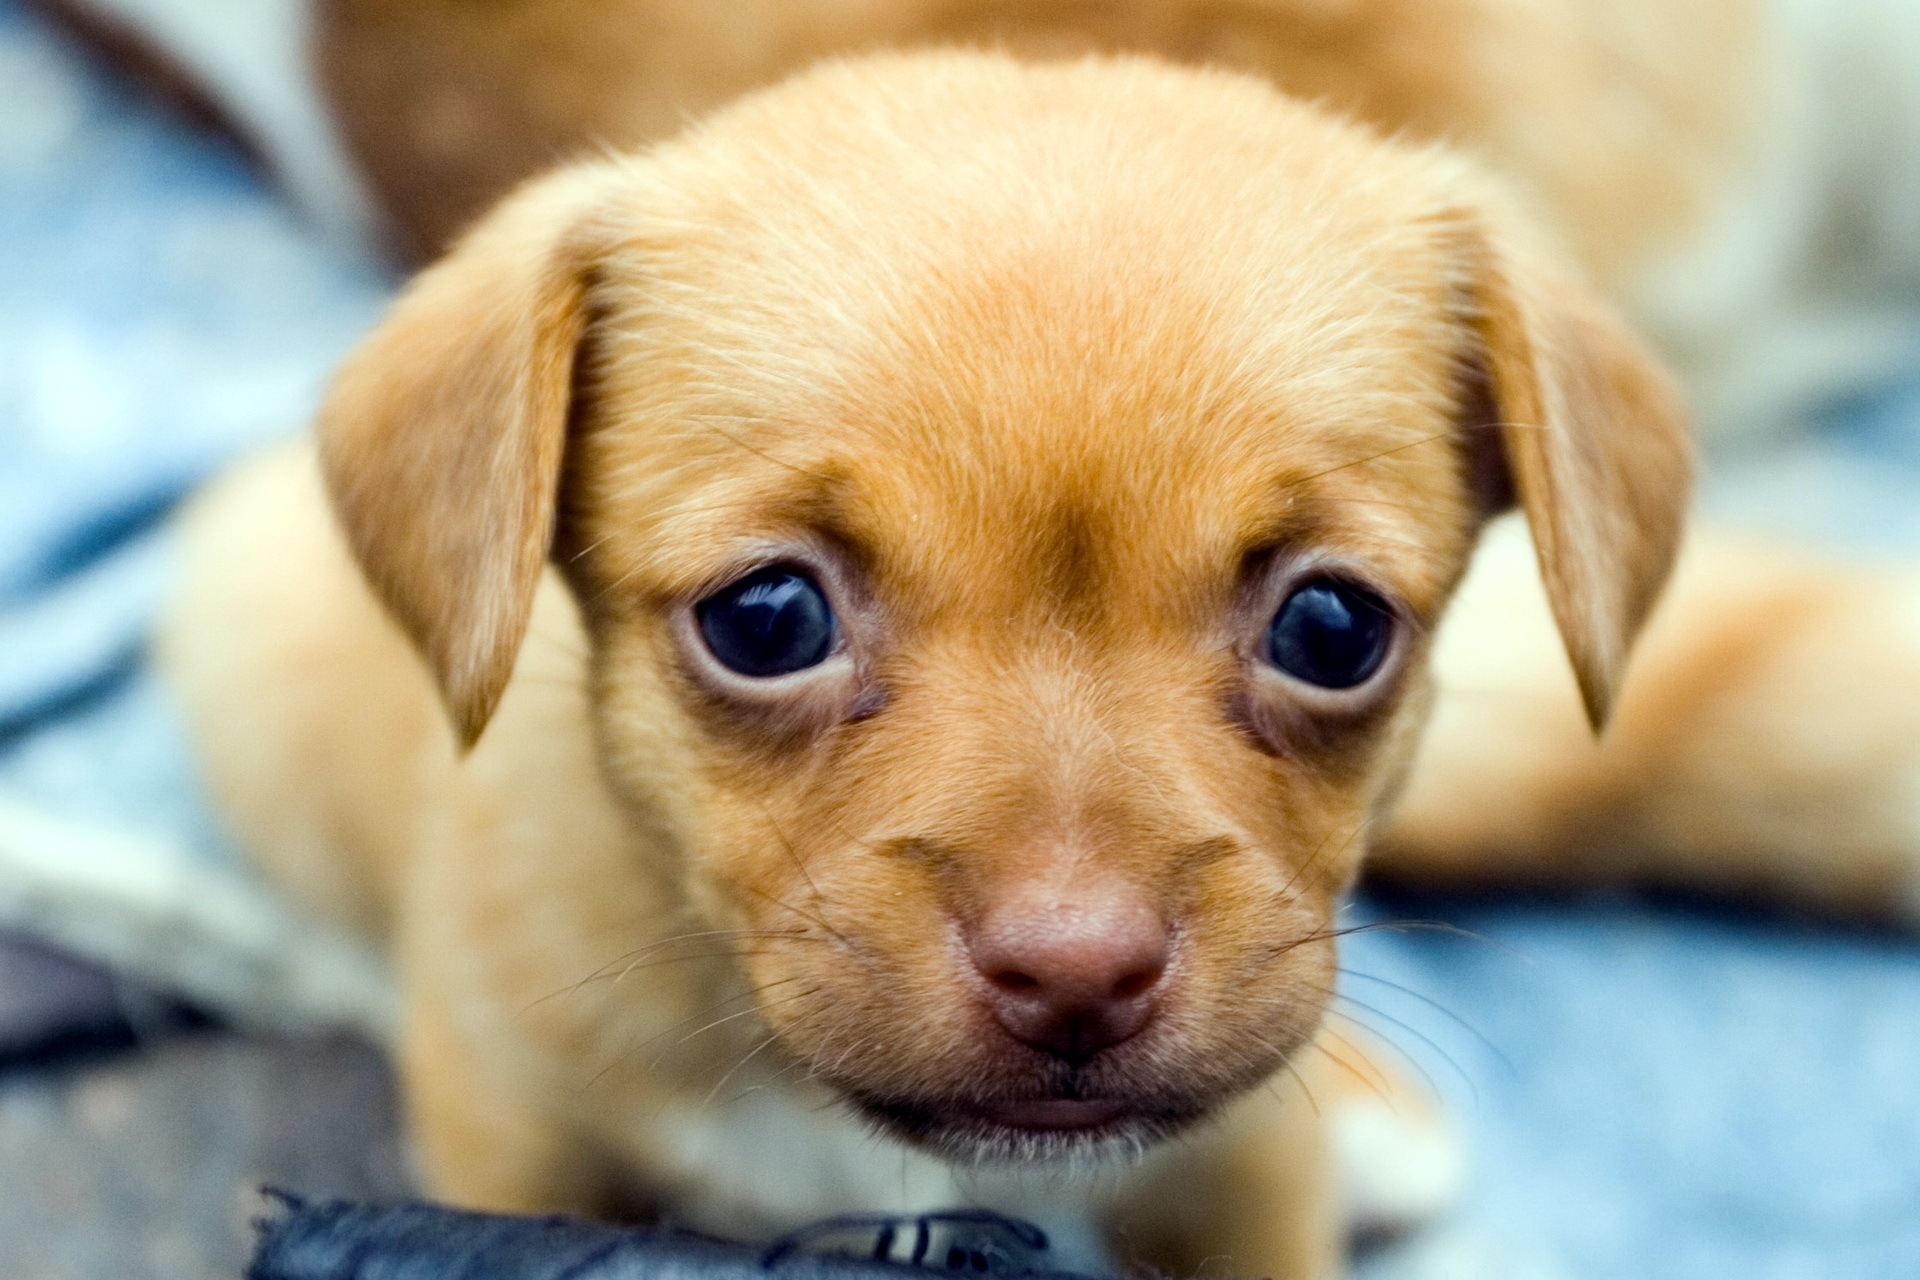 85455 download wallpaper Animals, Puppy, Muzzle, Eyes, Kid, Tot screensavers and pictures for free